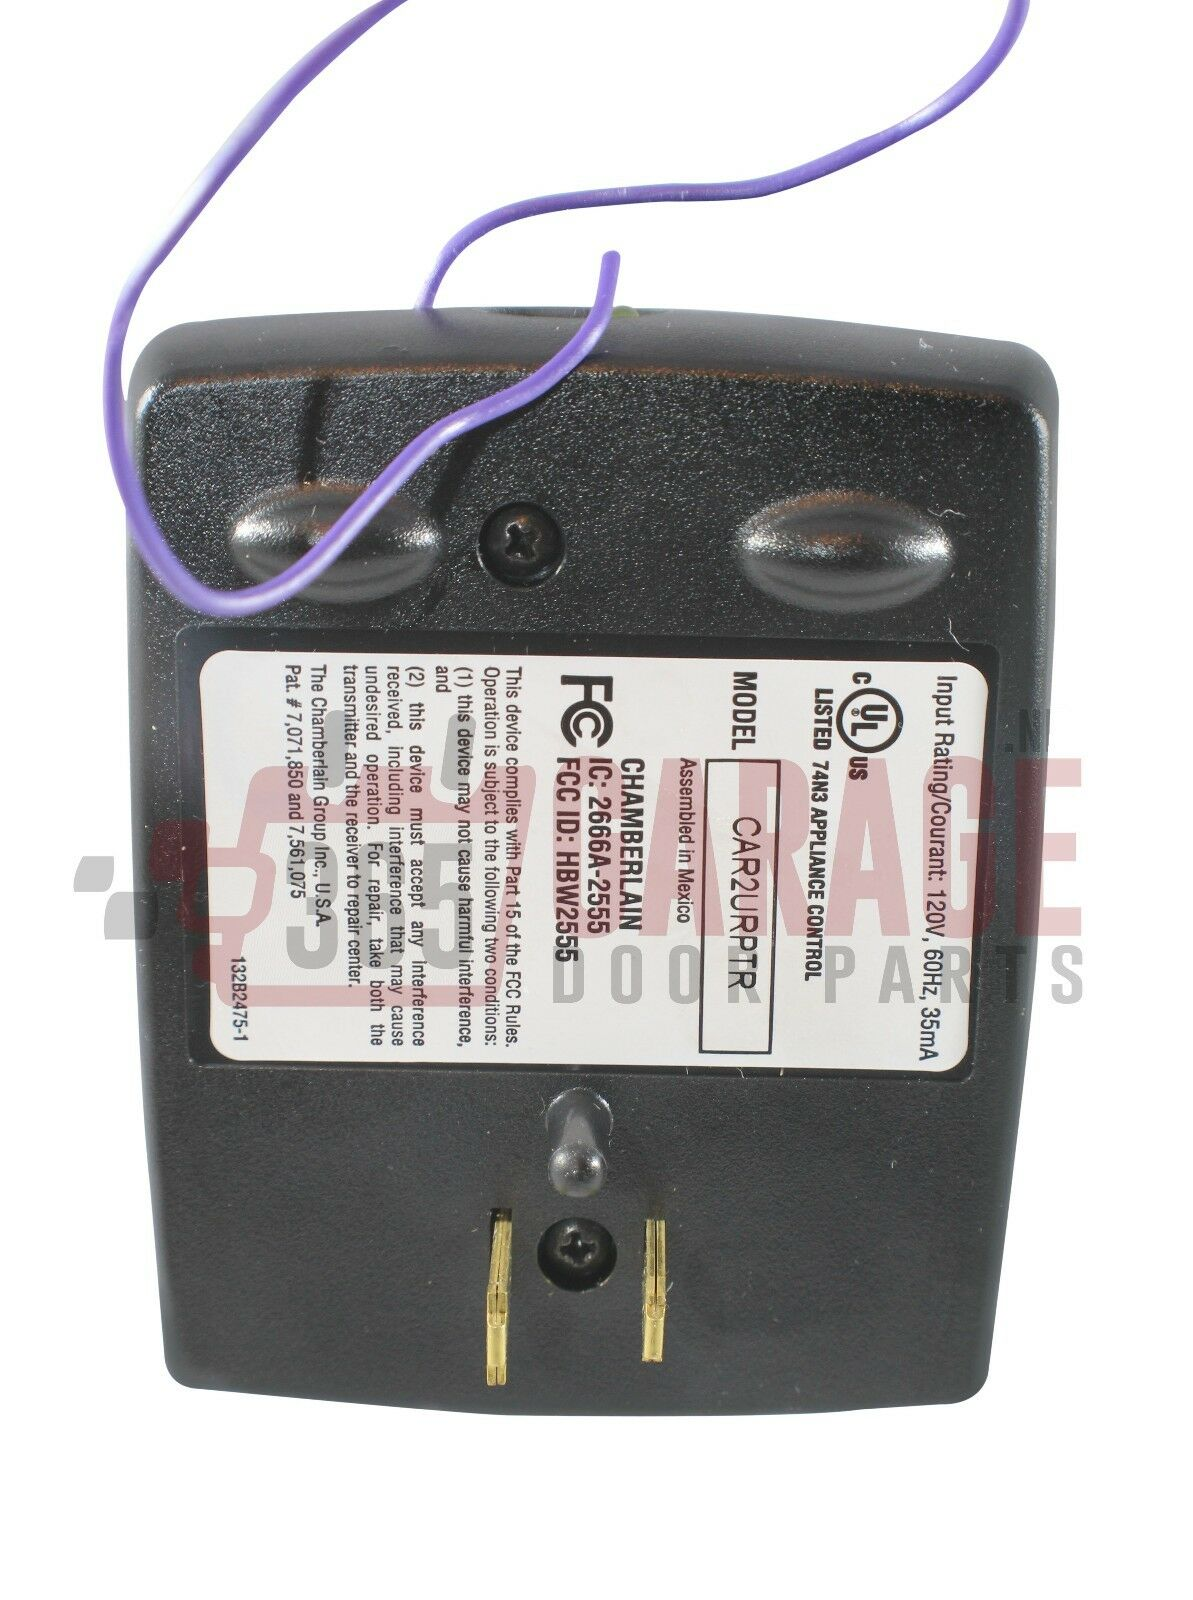 Car2u Repeater For Security 2 0 Garage Opener